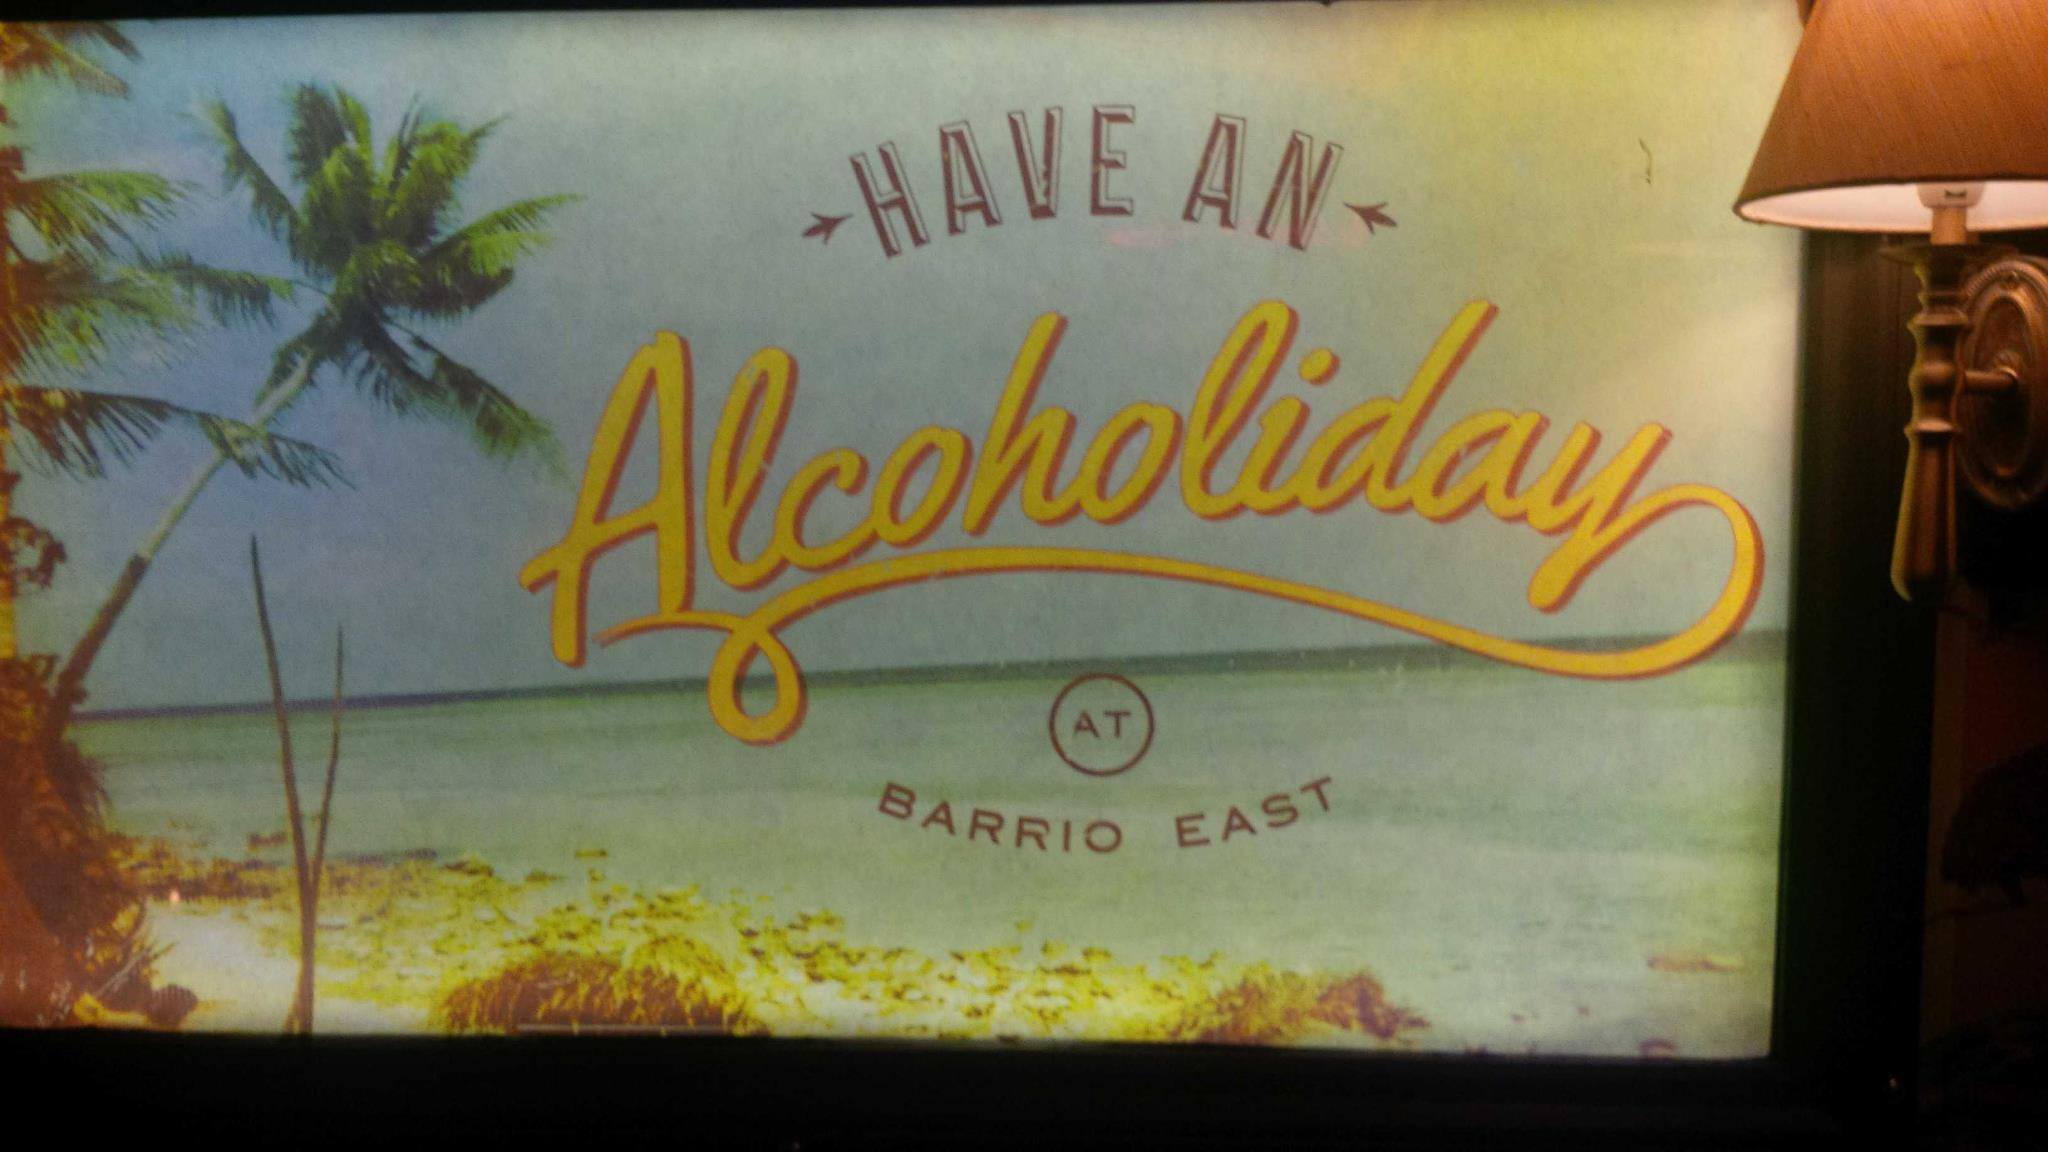 have_an_alcoholiday.jpg